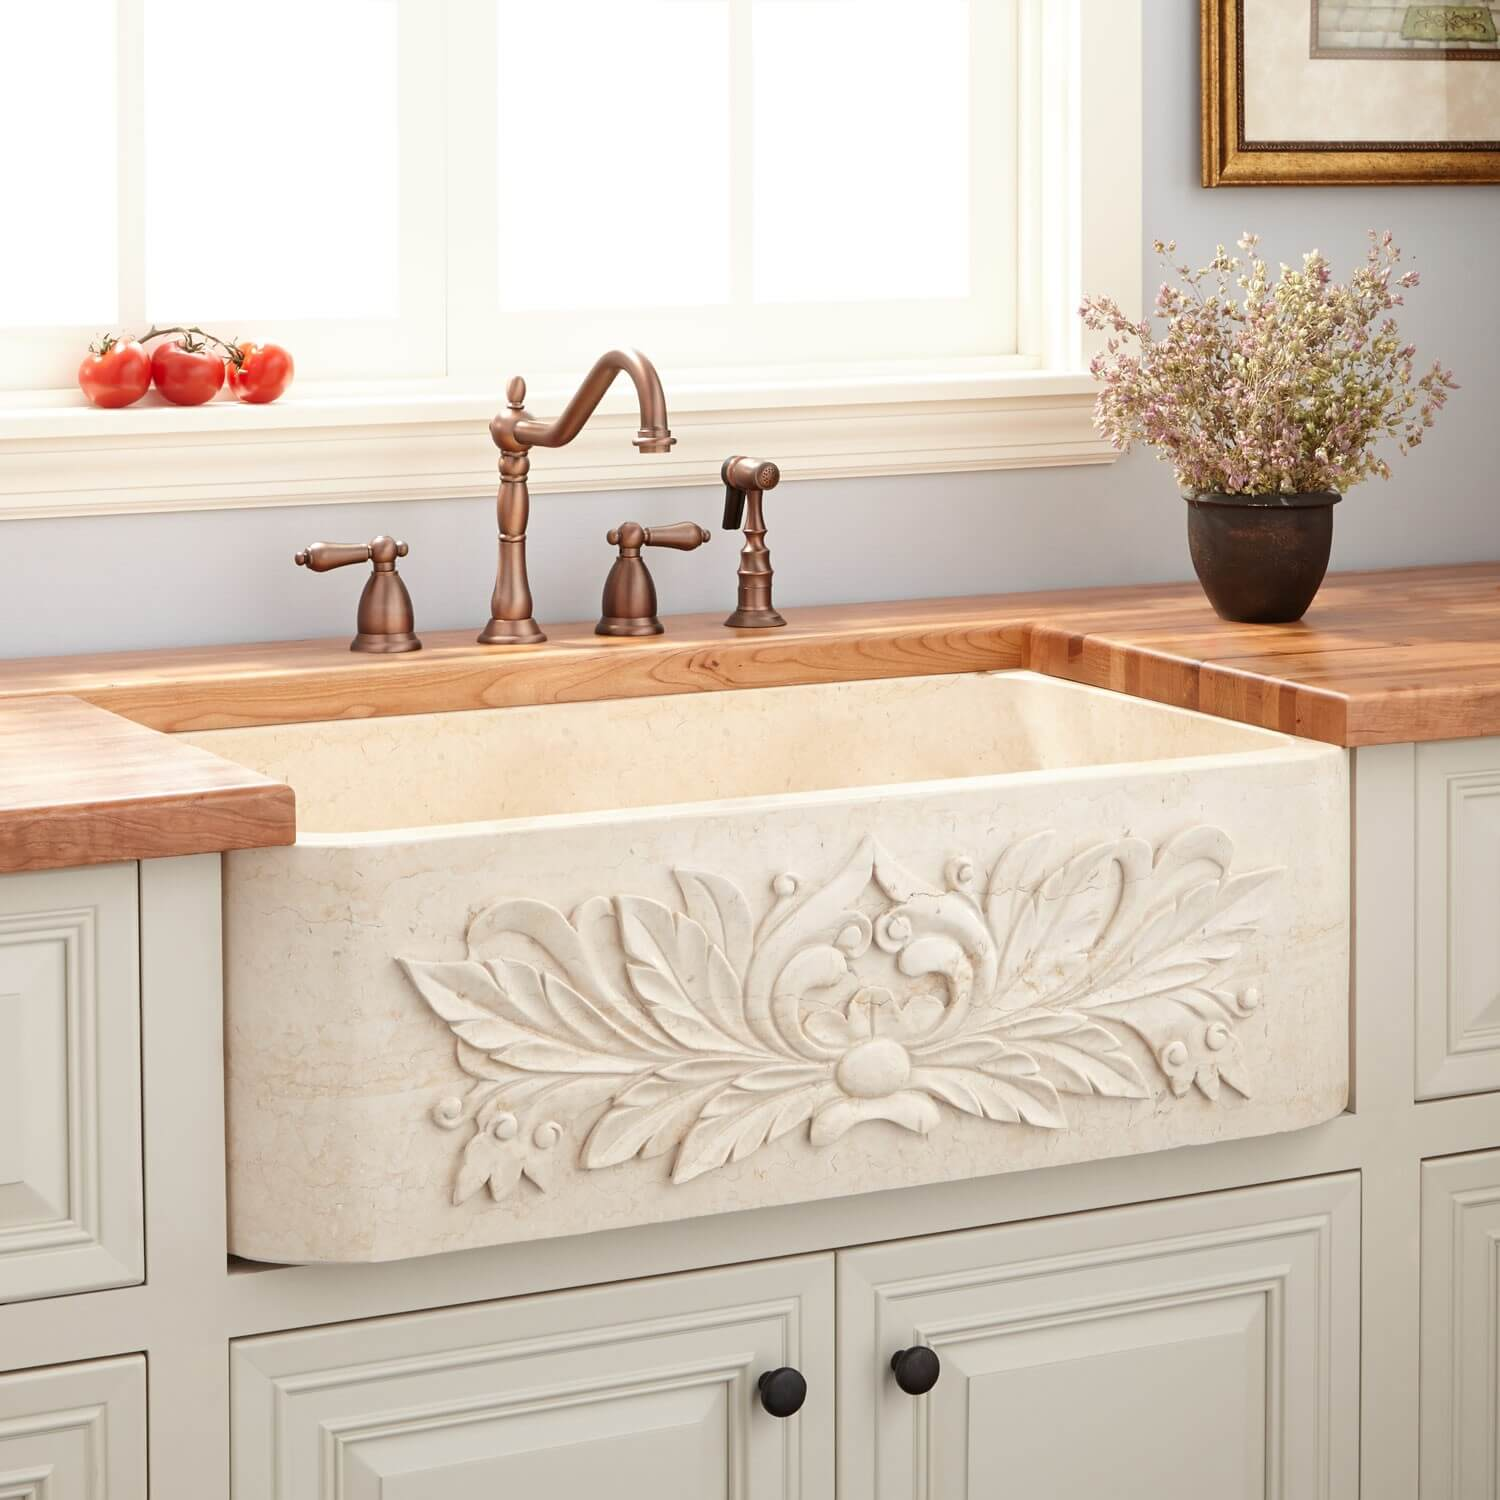 26 Inch Farmhouse Sink 26 Farmhouse Kitchen Sink Ideas And Designs For 2019